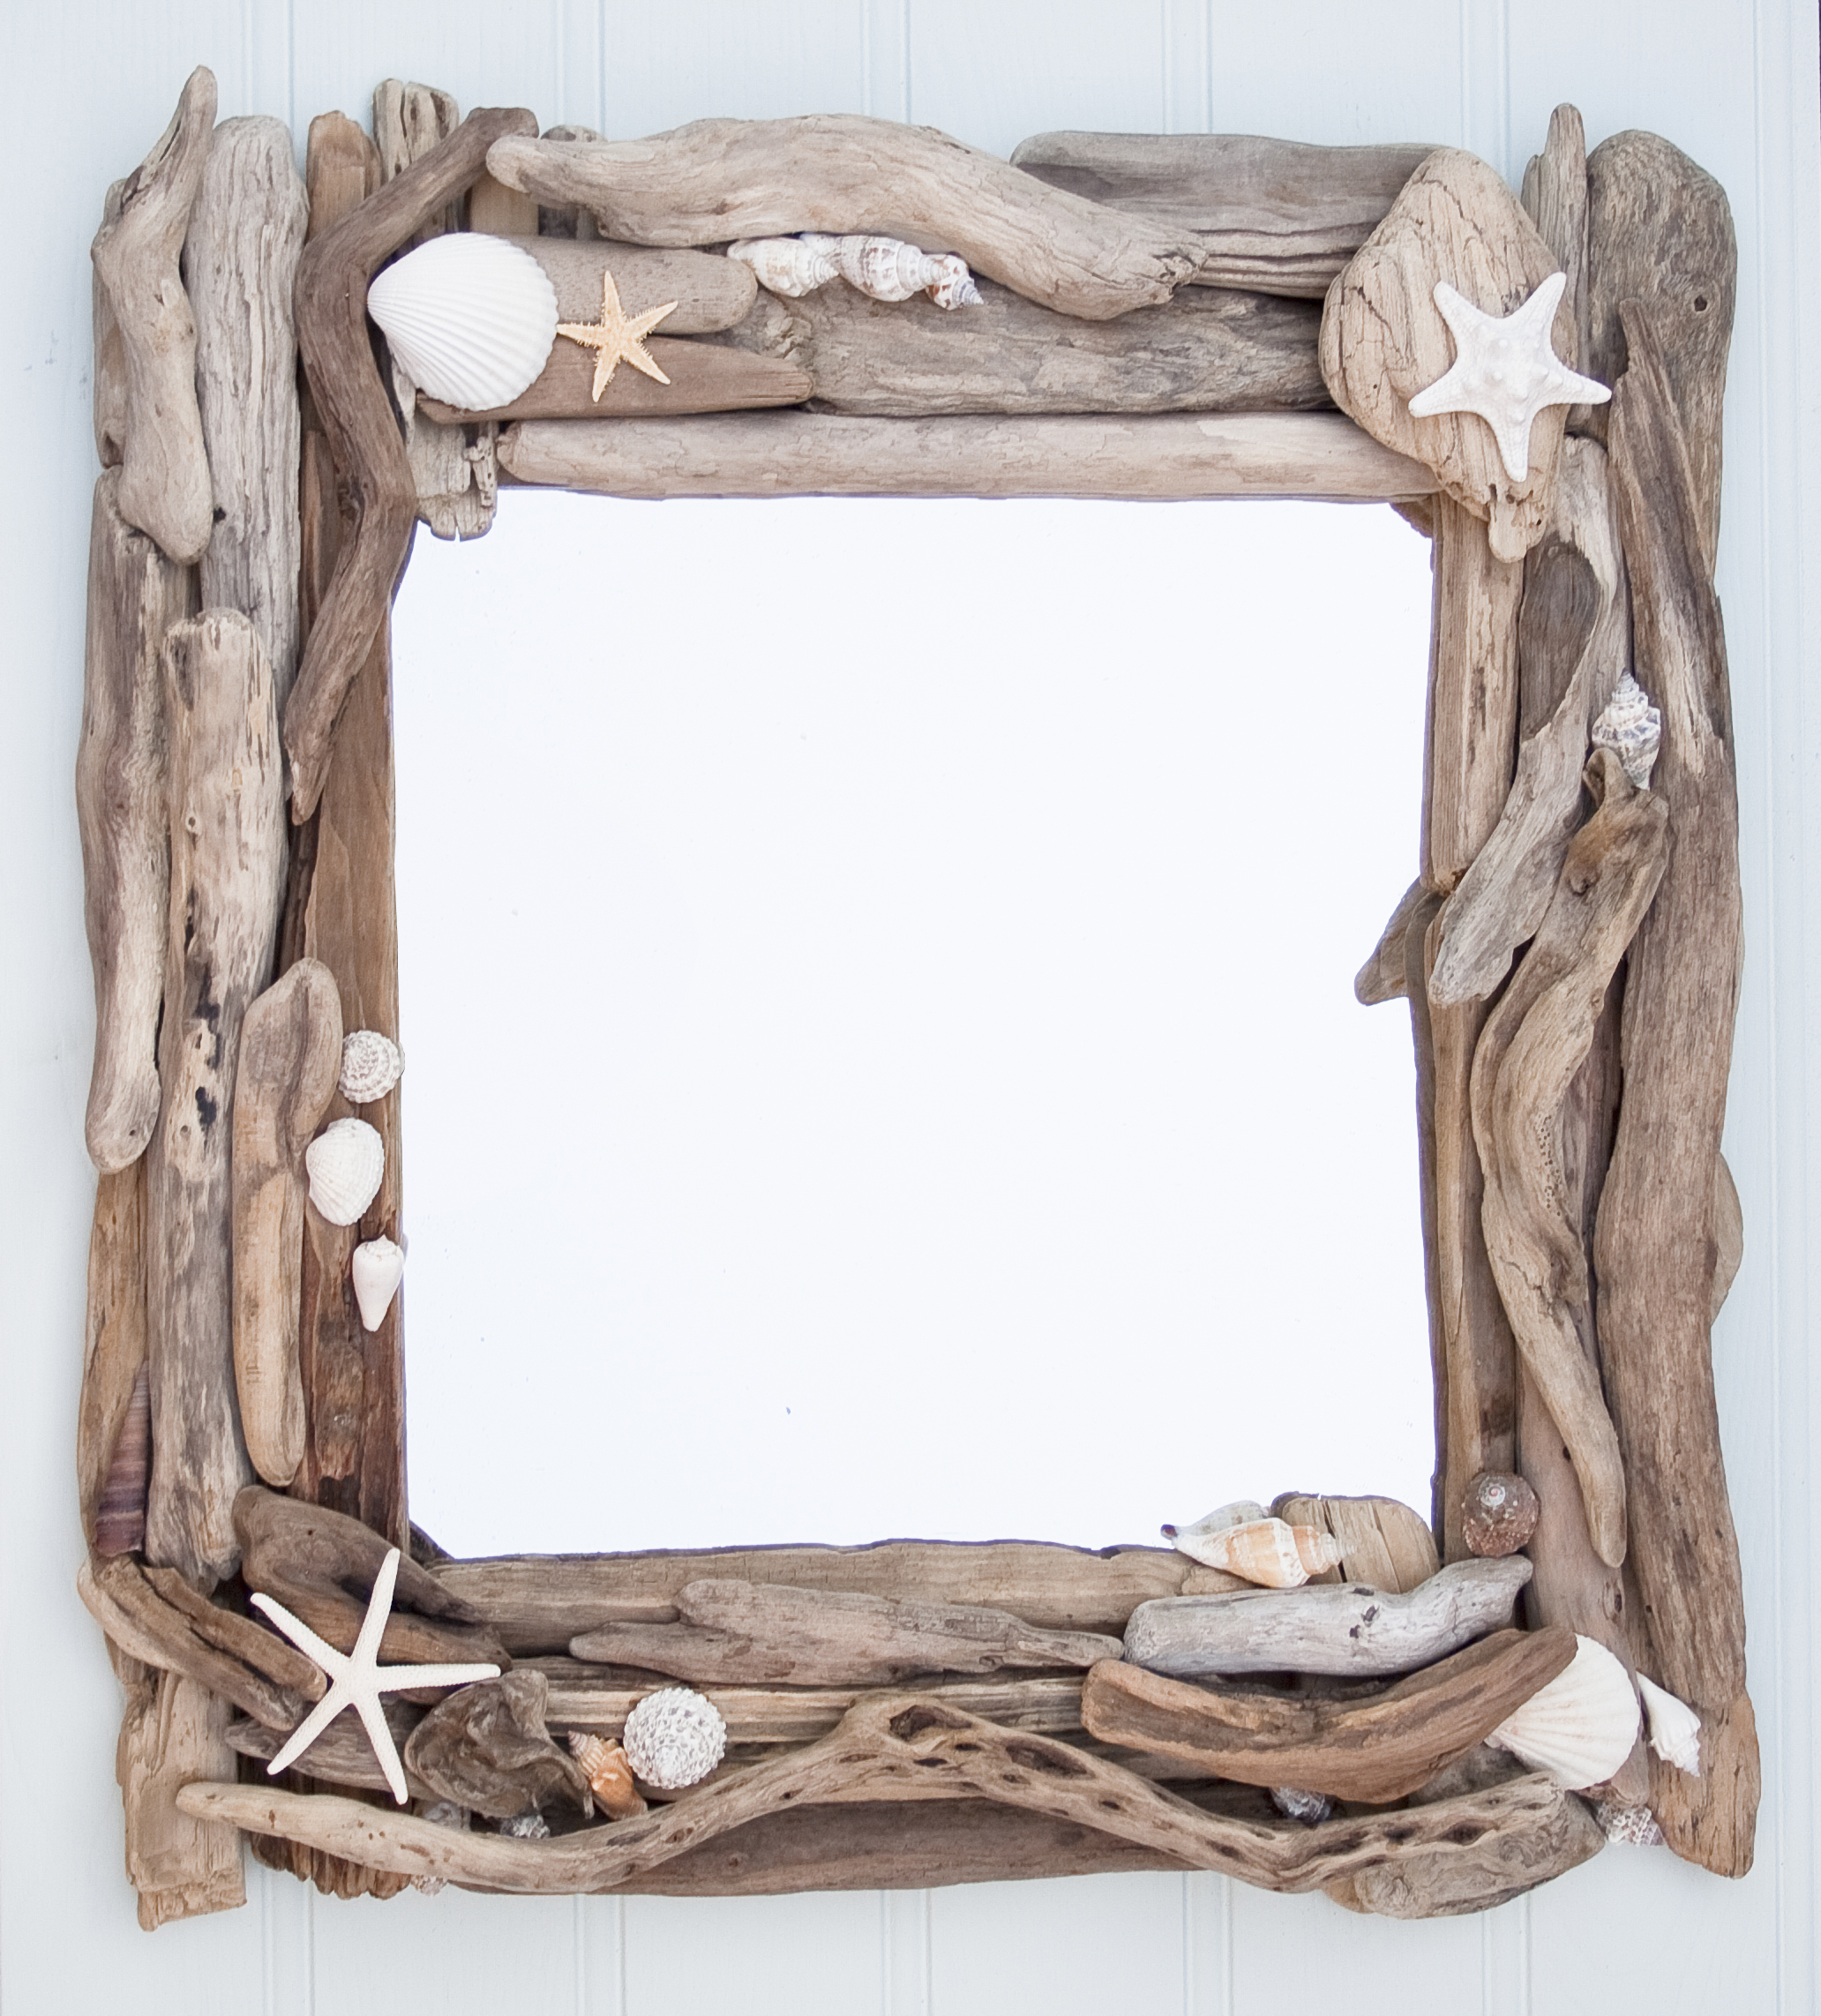 Driftwood And Sea Shell Mirror Driftwood Dreaming